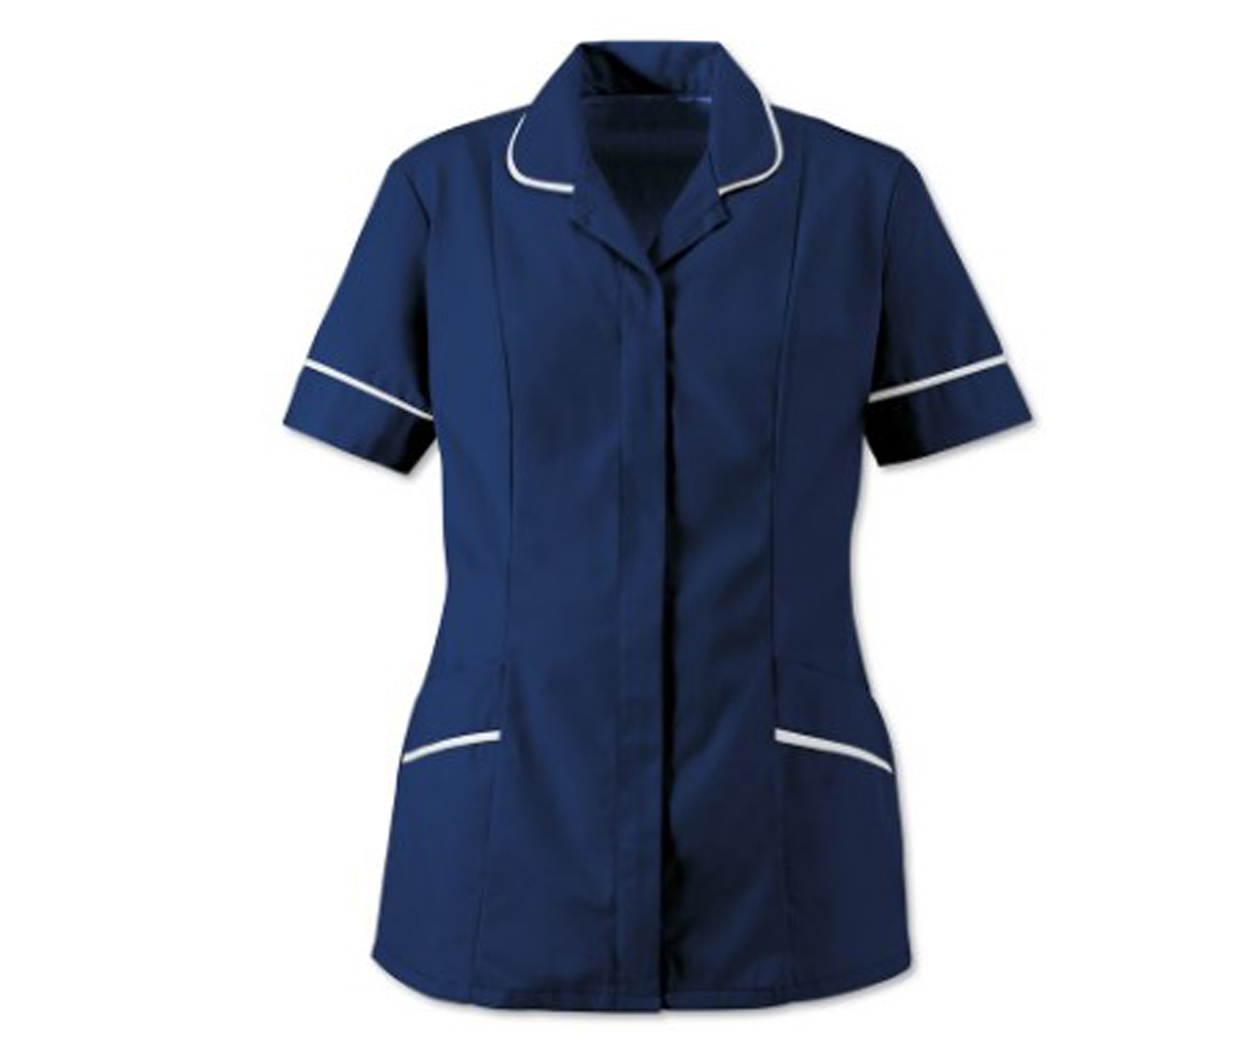 Ladies Navy with White Trim Soft Brushed Tunic